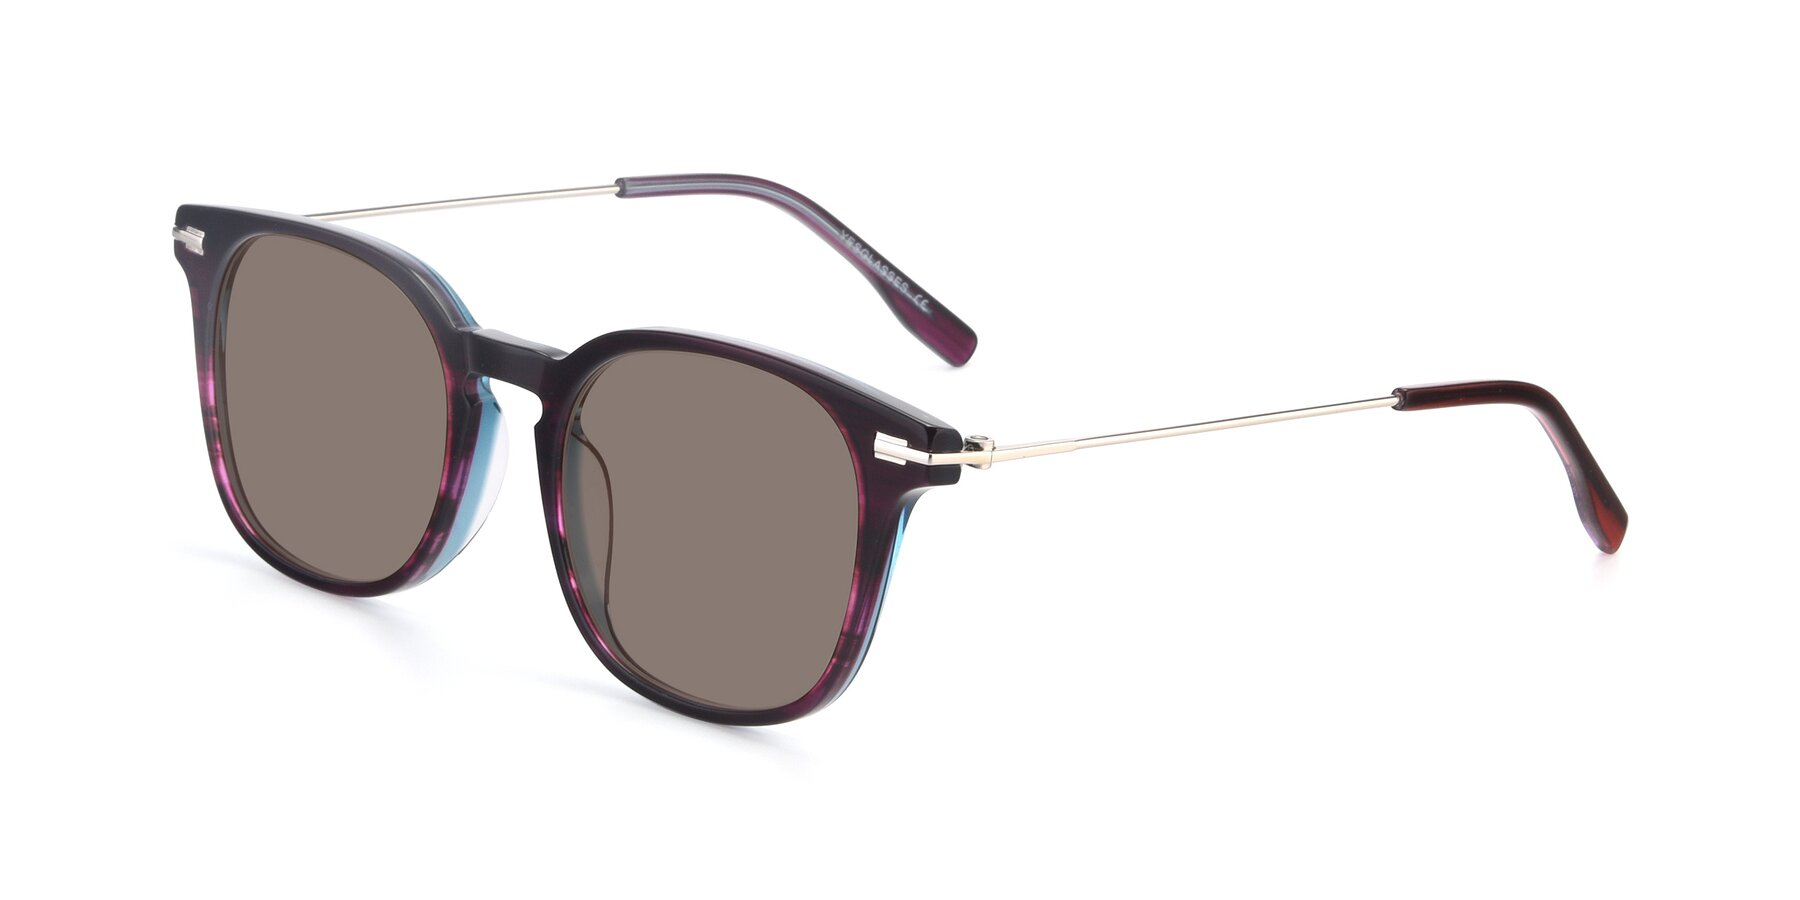 Angle of 17711 in Dark Purple with Medium Brown Tinted Lenses